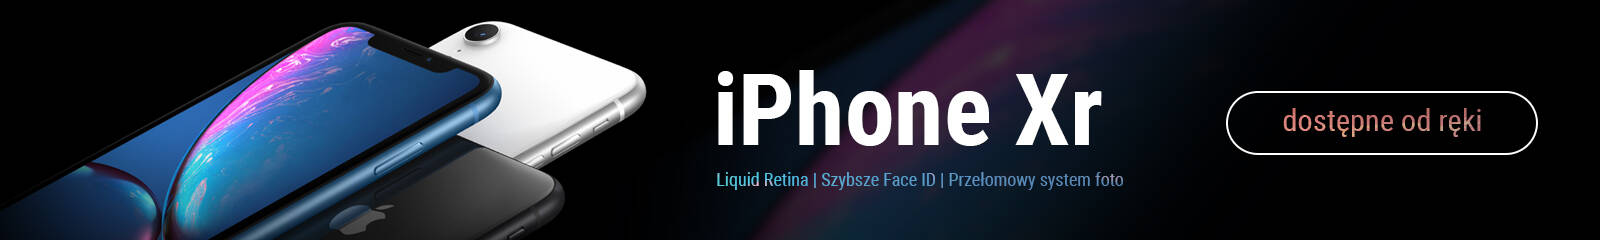 Nowy iPhone Xr